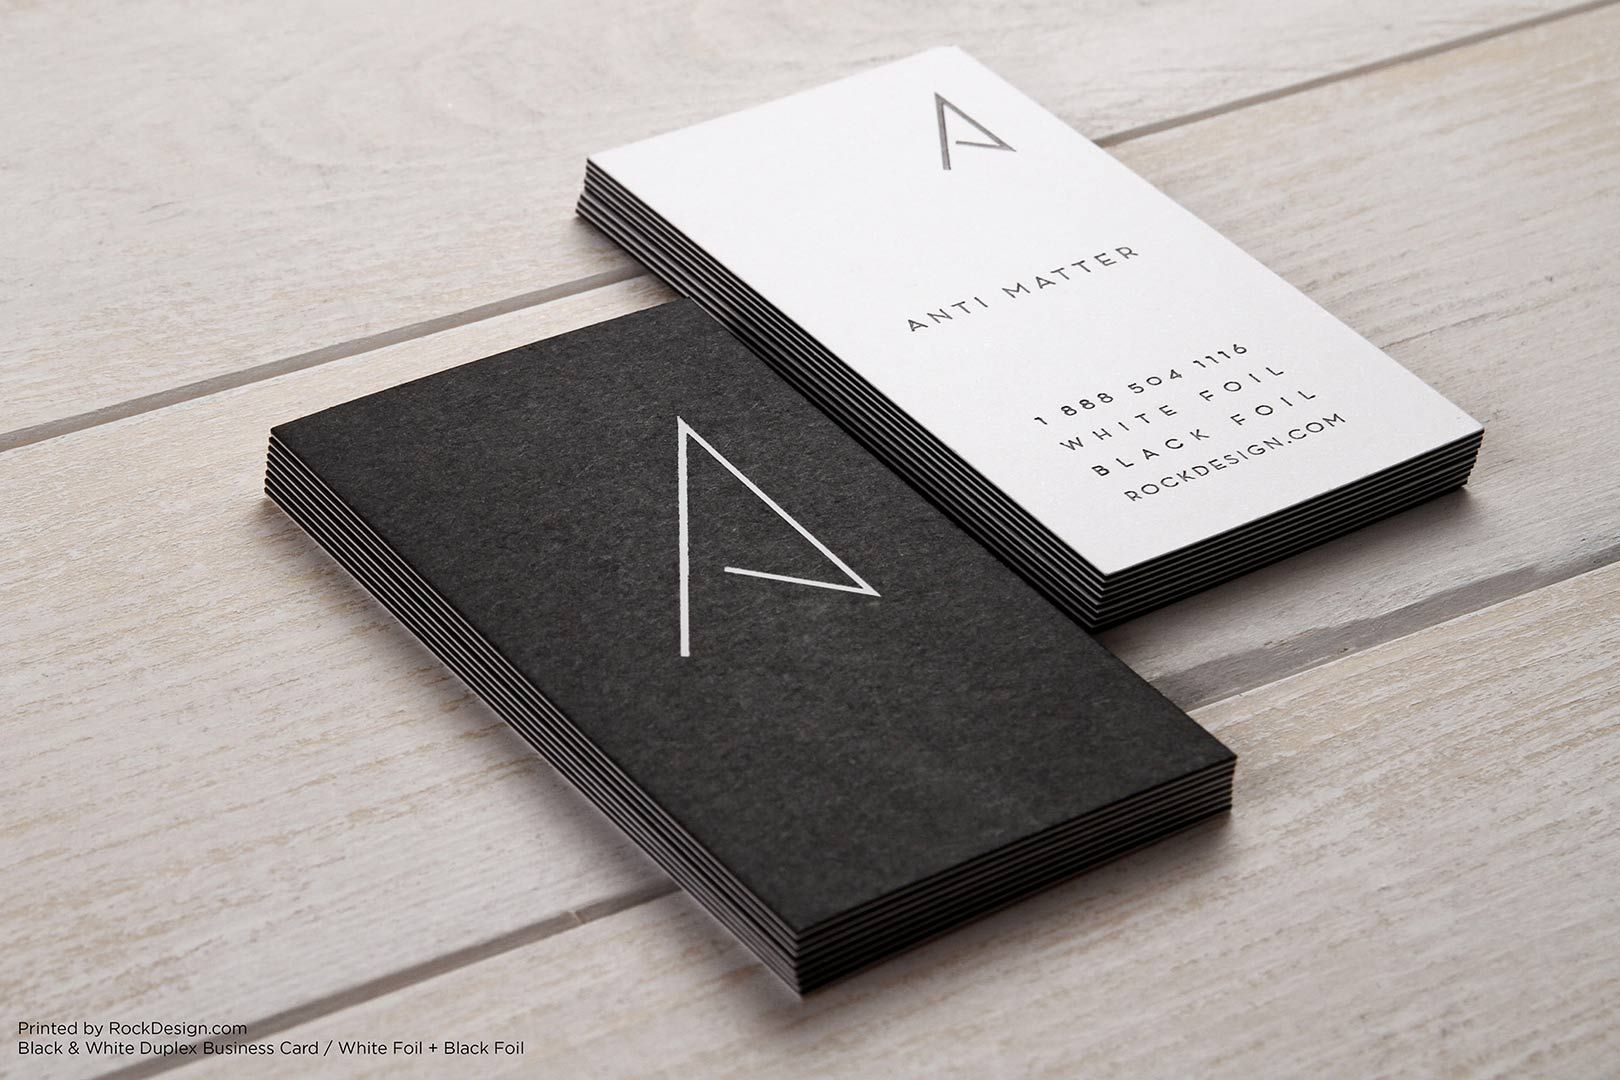 Duplex Business Cards White Business Card Modern Business Cards Business Card Black